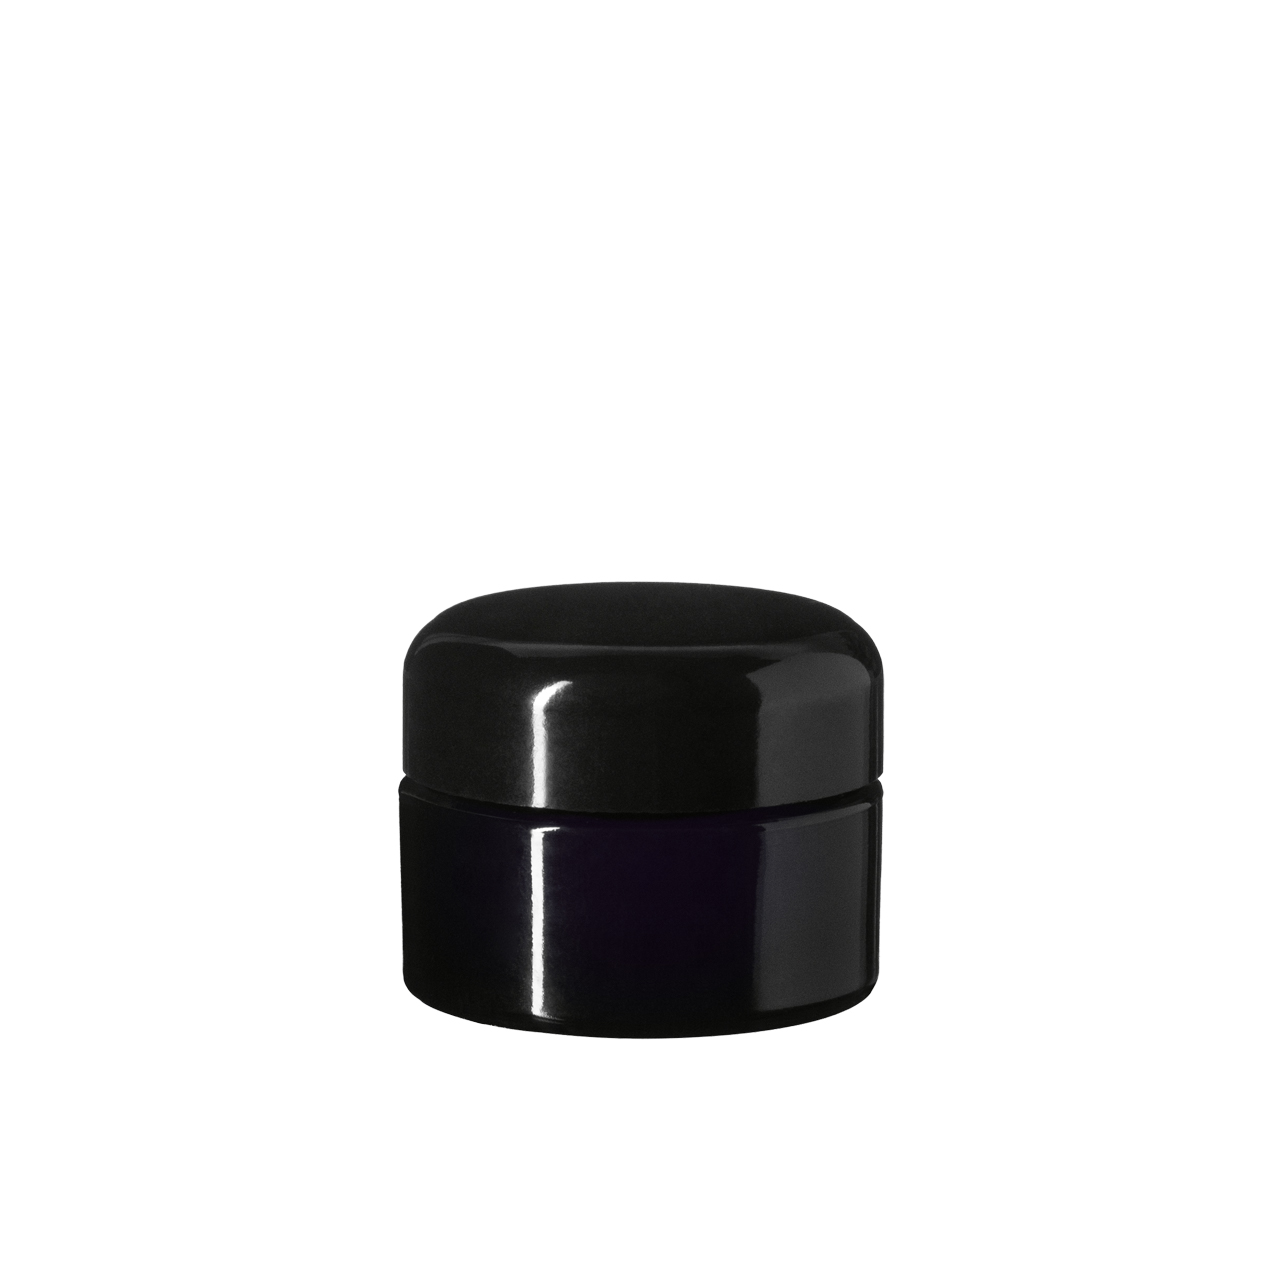 Lid Classic 38 special, Urea, black, semi-glossy finish with violet Phan inlay (for Ceres 15)